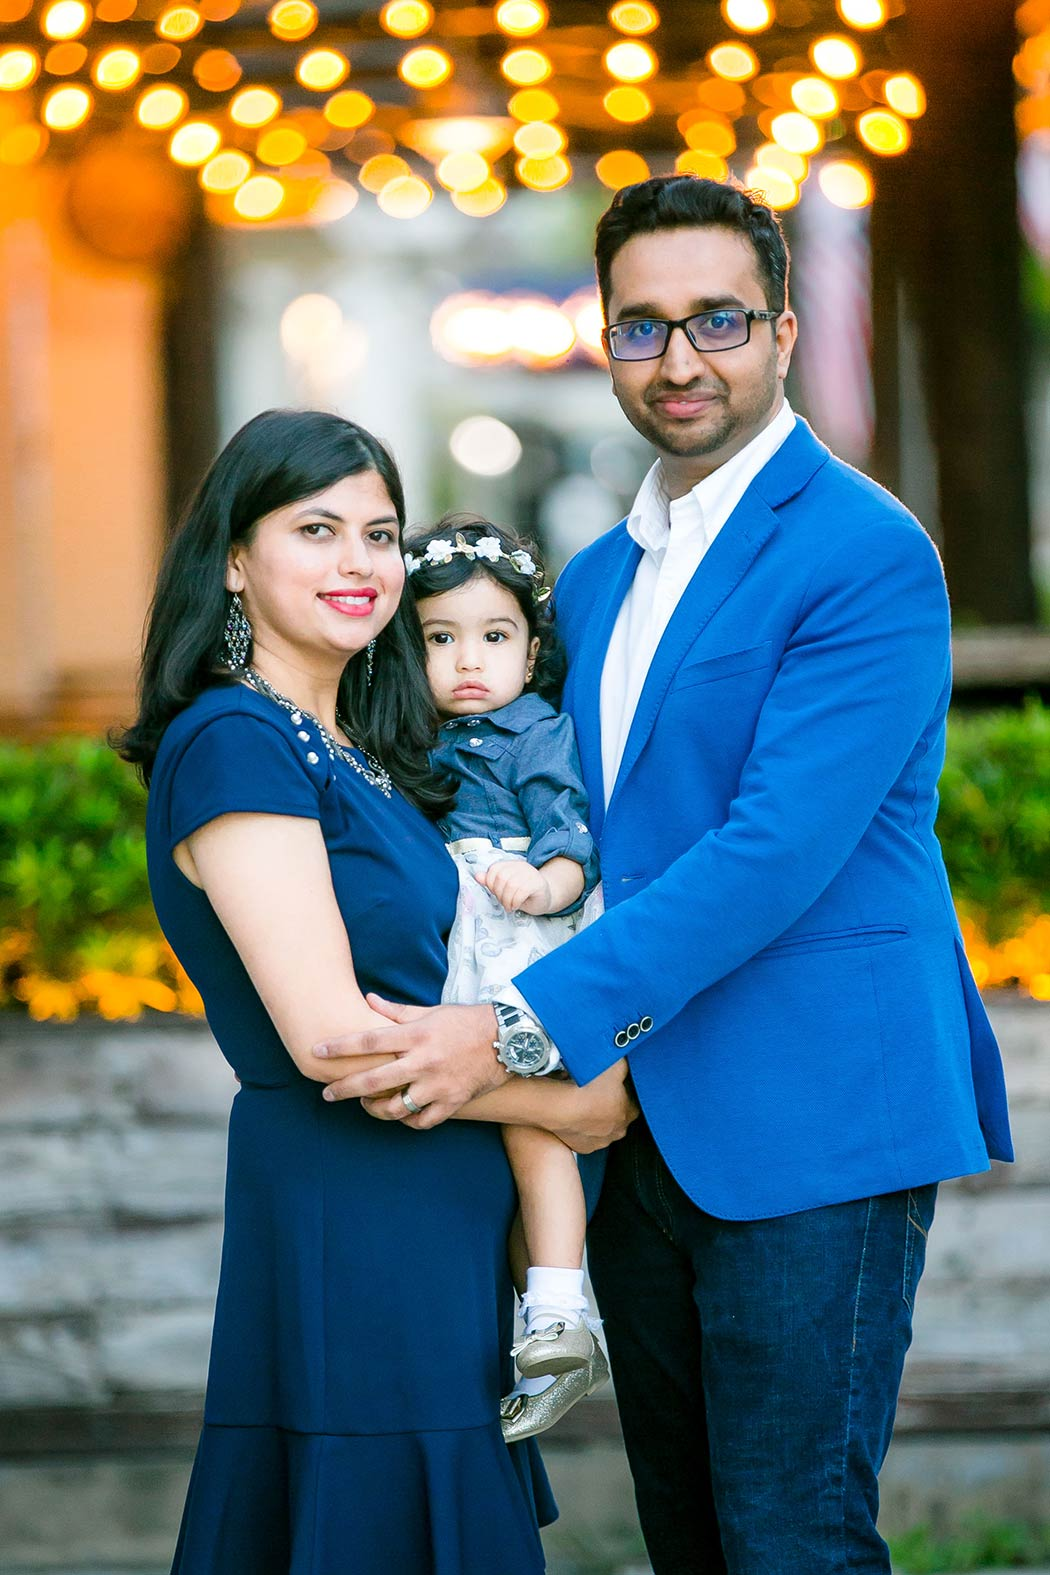 family poses with young baby for family photographs in fort lauderdale | family photography with string lights